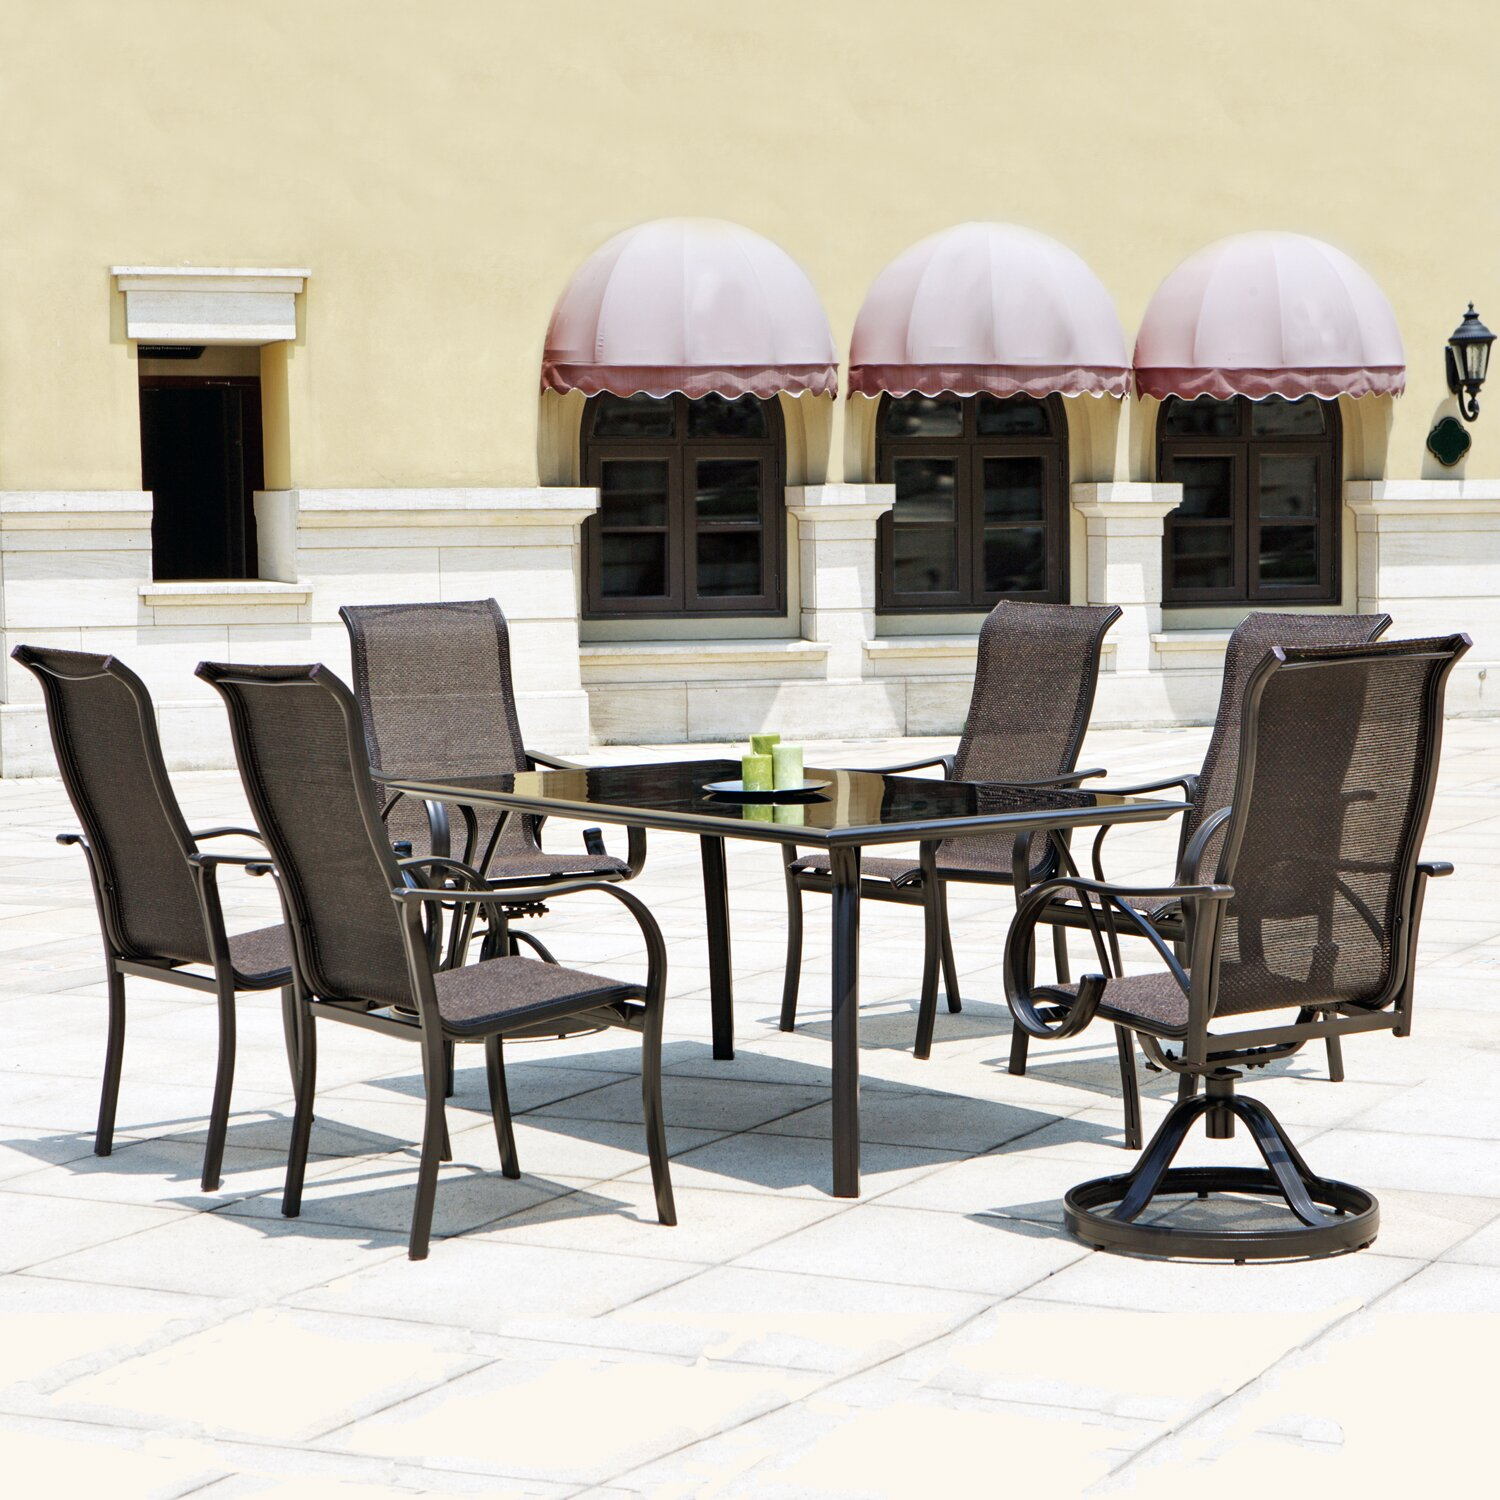 Mission hills coronado 7 piece dining set reviews wayfair for 7 piece dining set